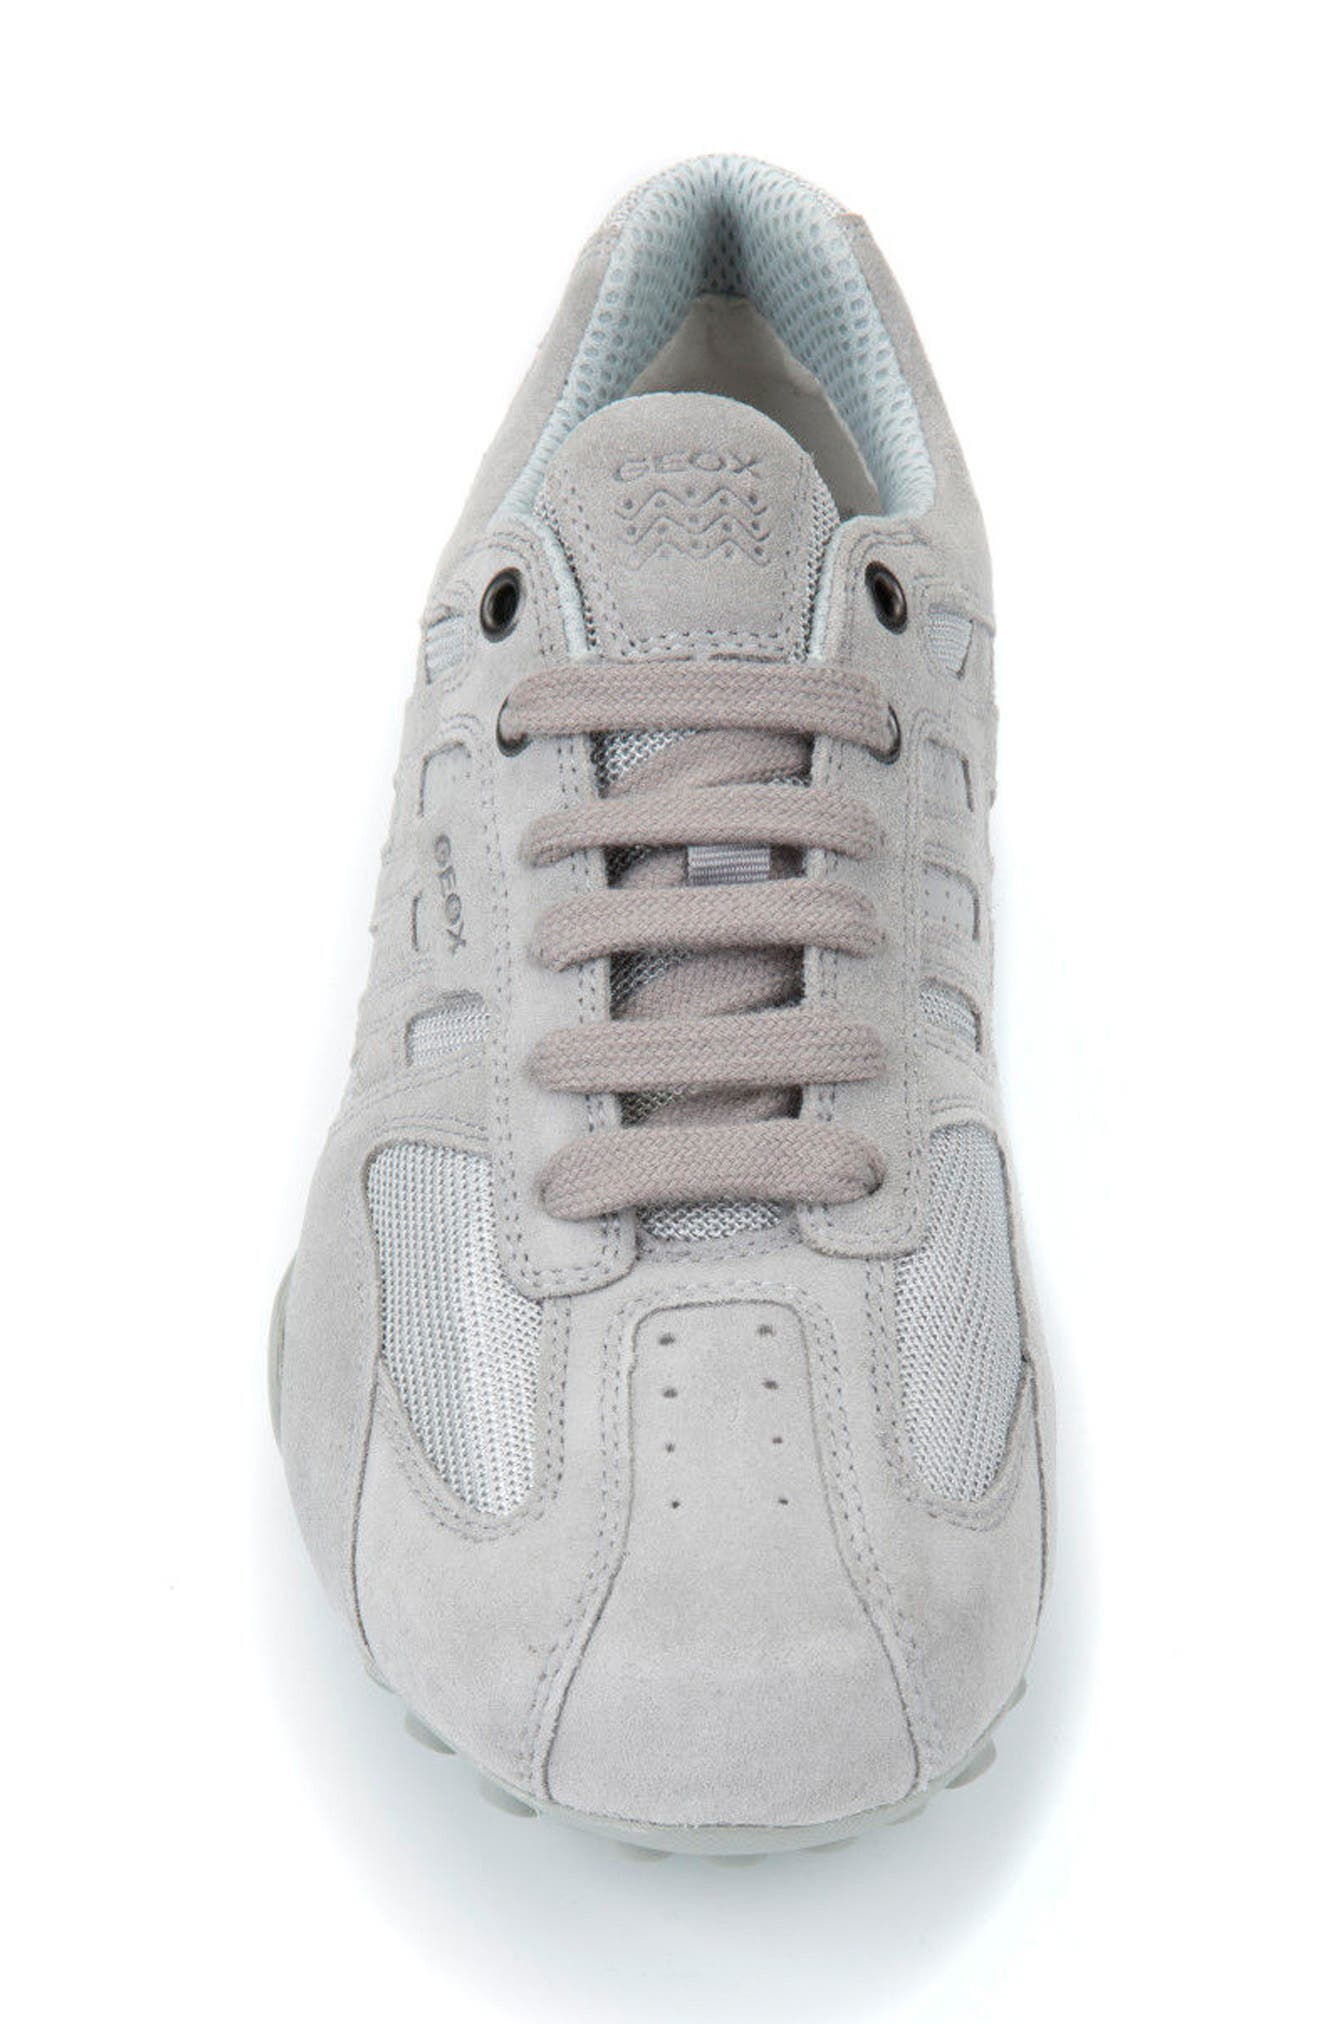 Snake 125 Low Top Sneaker,                             Alternate thumbnail 4, color,                             050